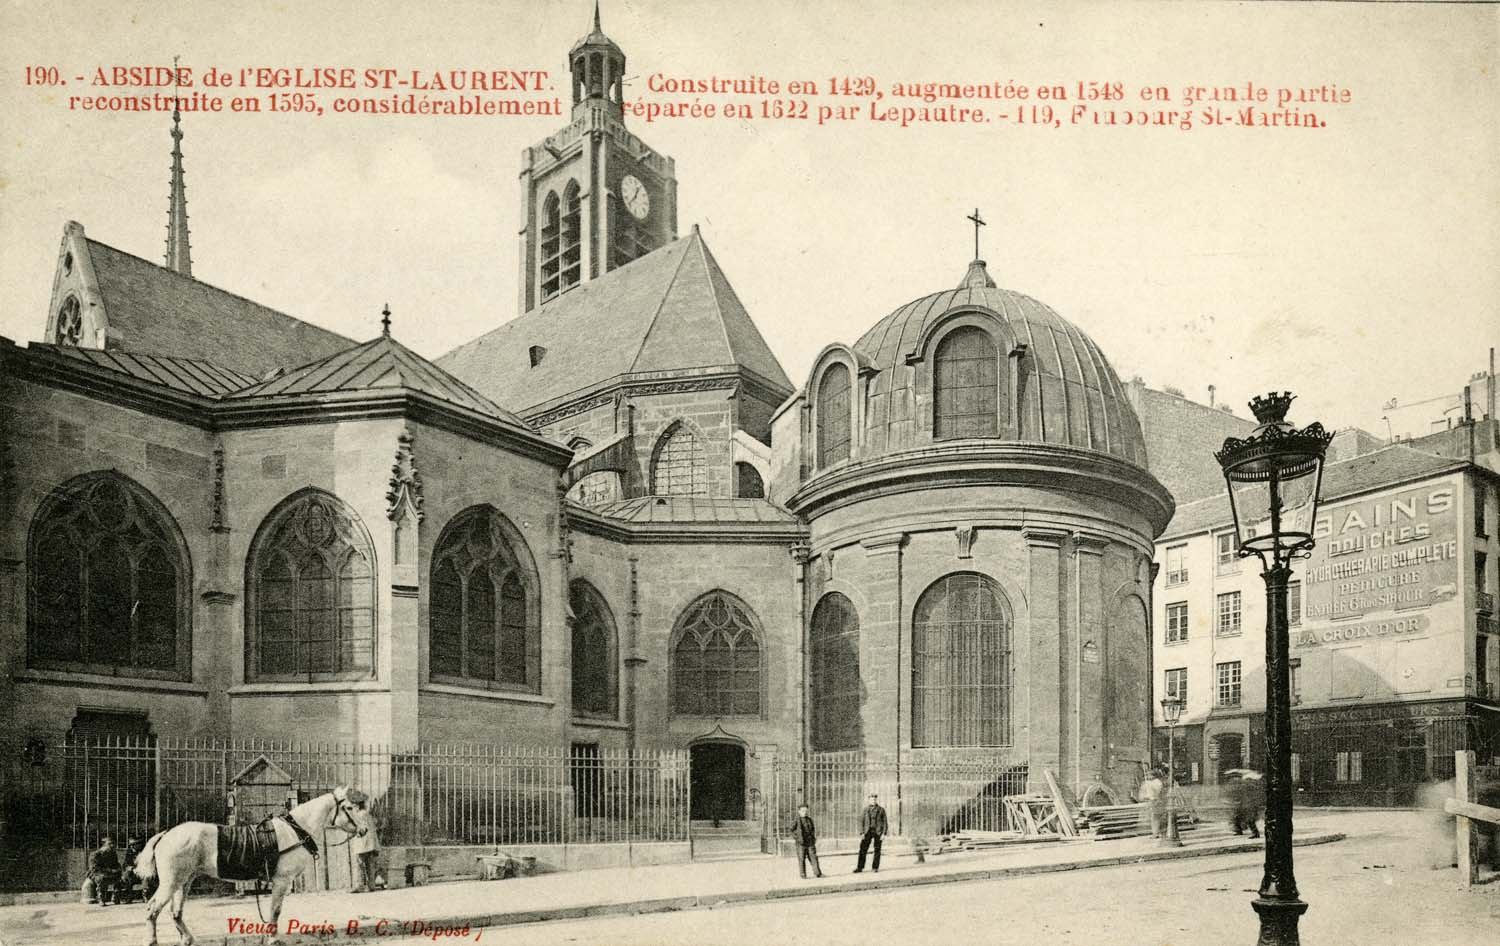 The façade of Saint-Laurent